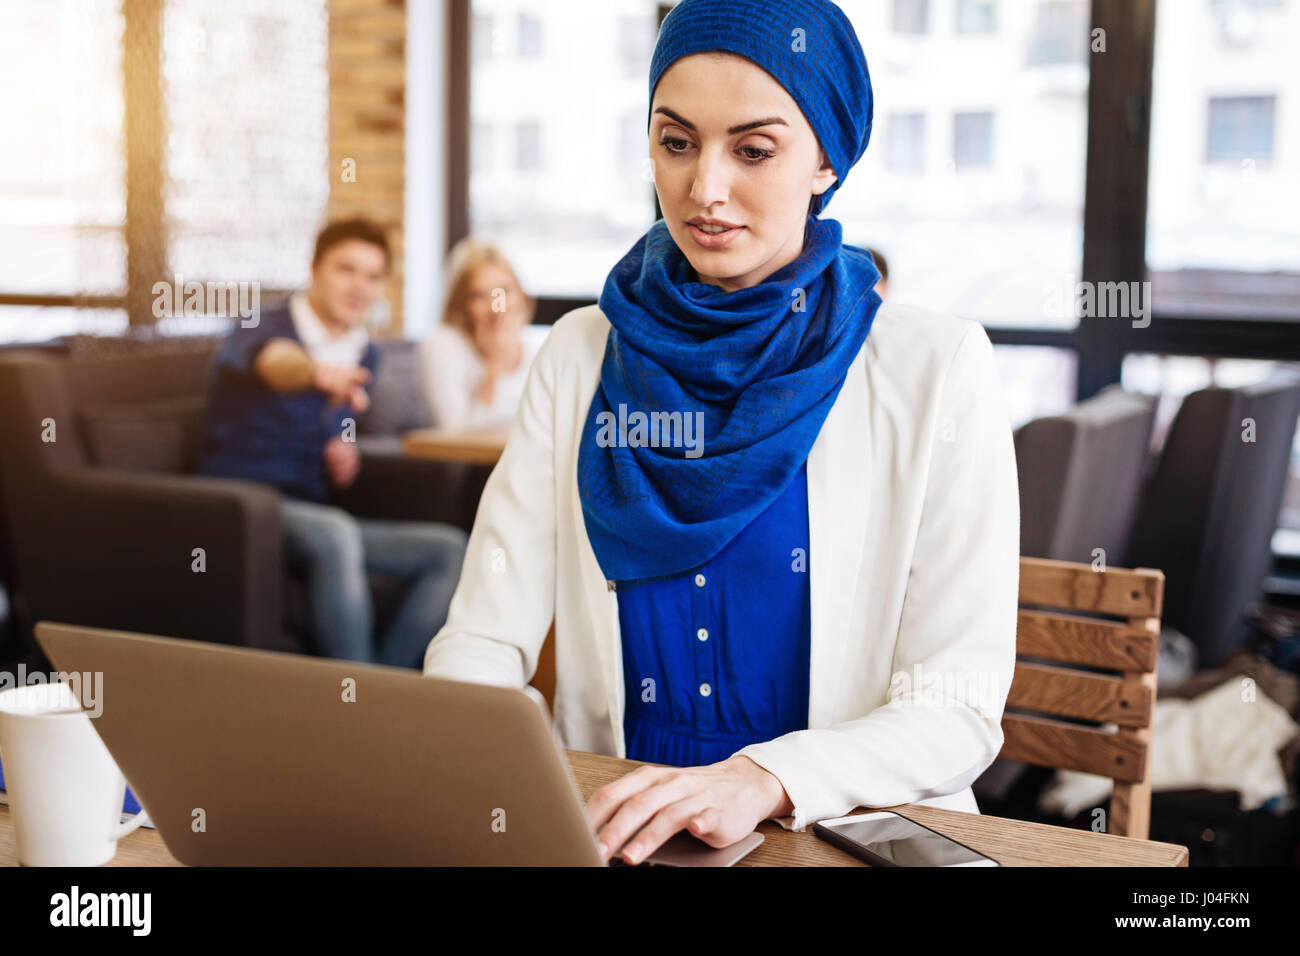 Pleasant muslim businesswoman feeling injustice from the society - Stock Image